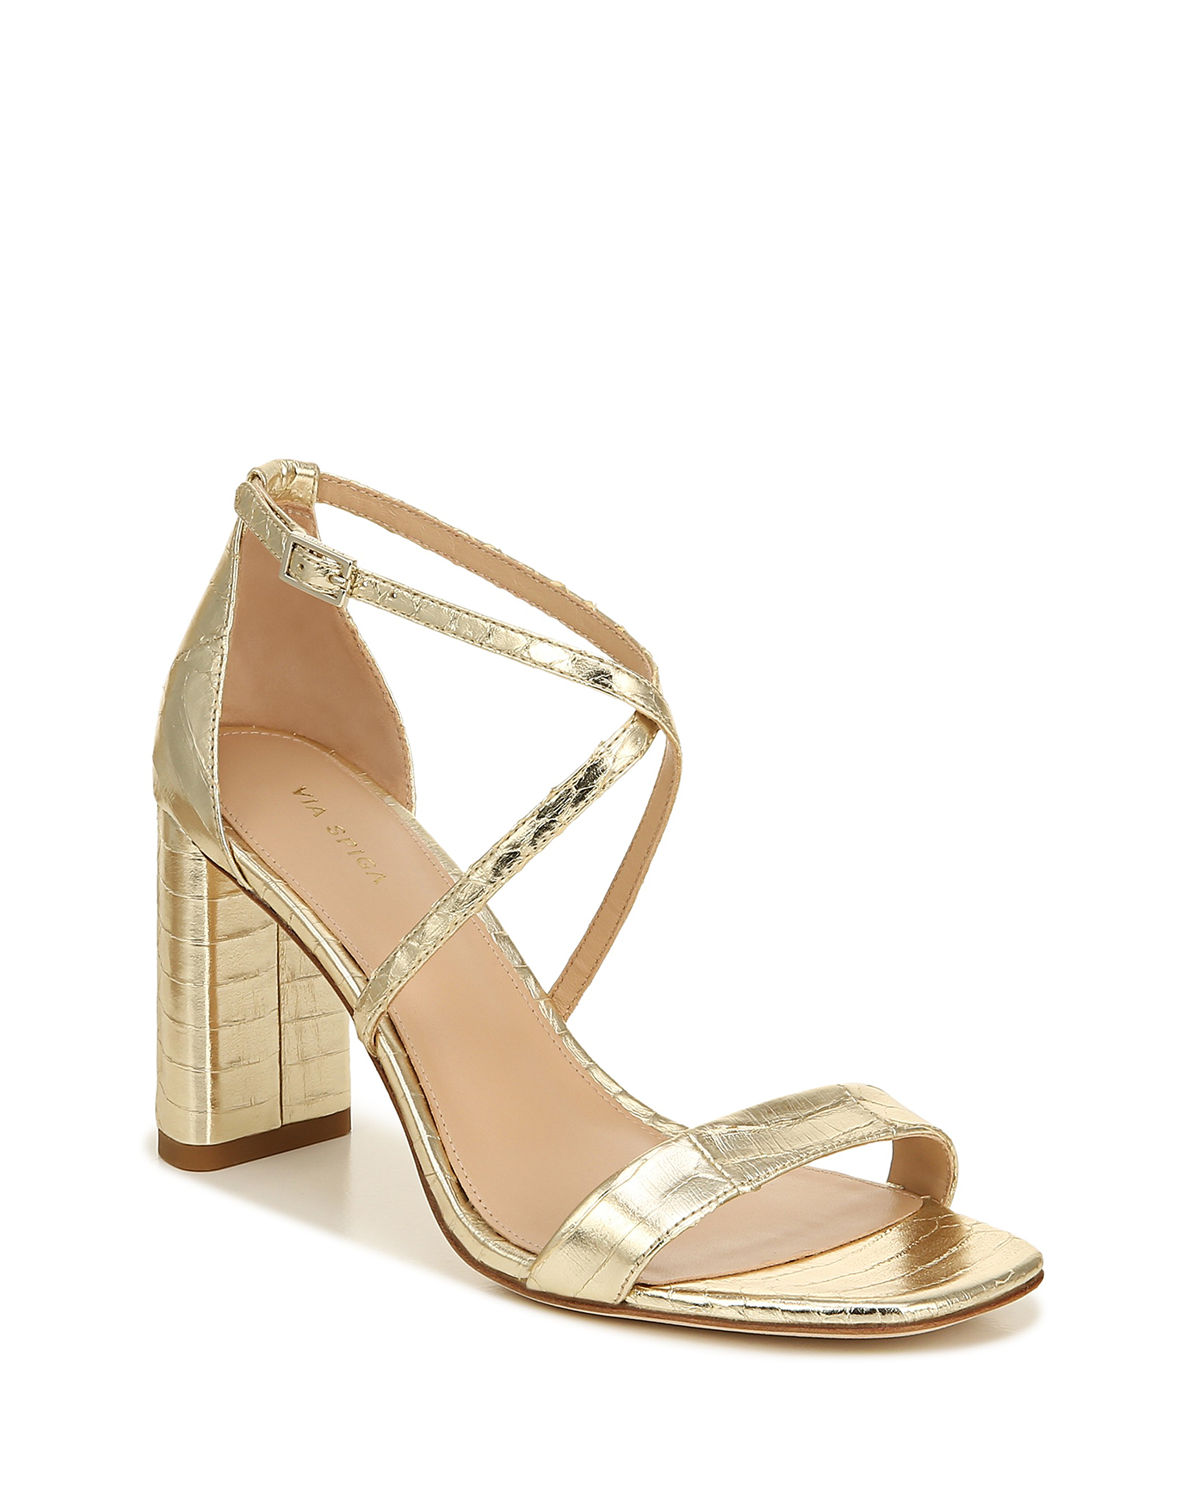 Via Spiga SABINNE METALLIC SNAKE-PRINT SANDALS